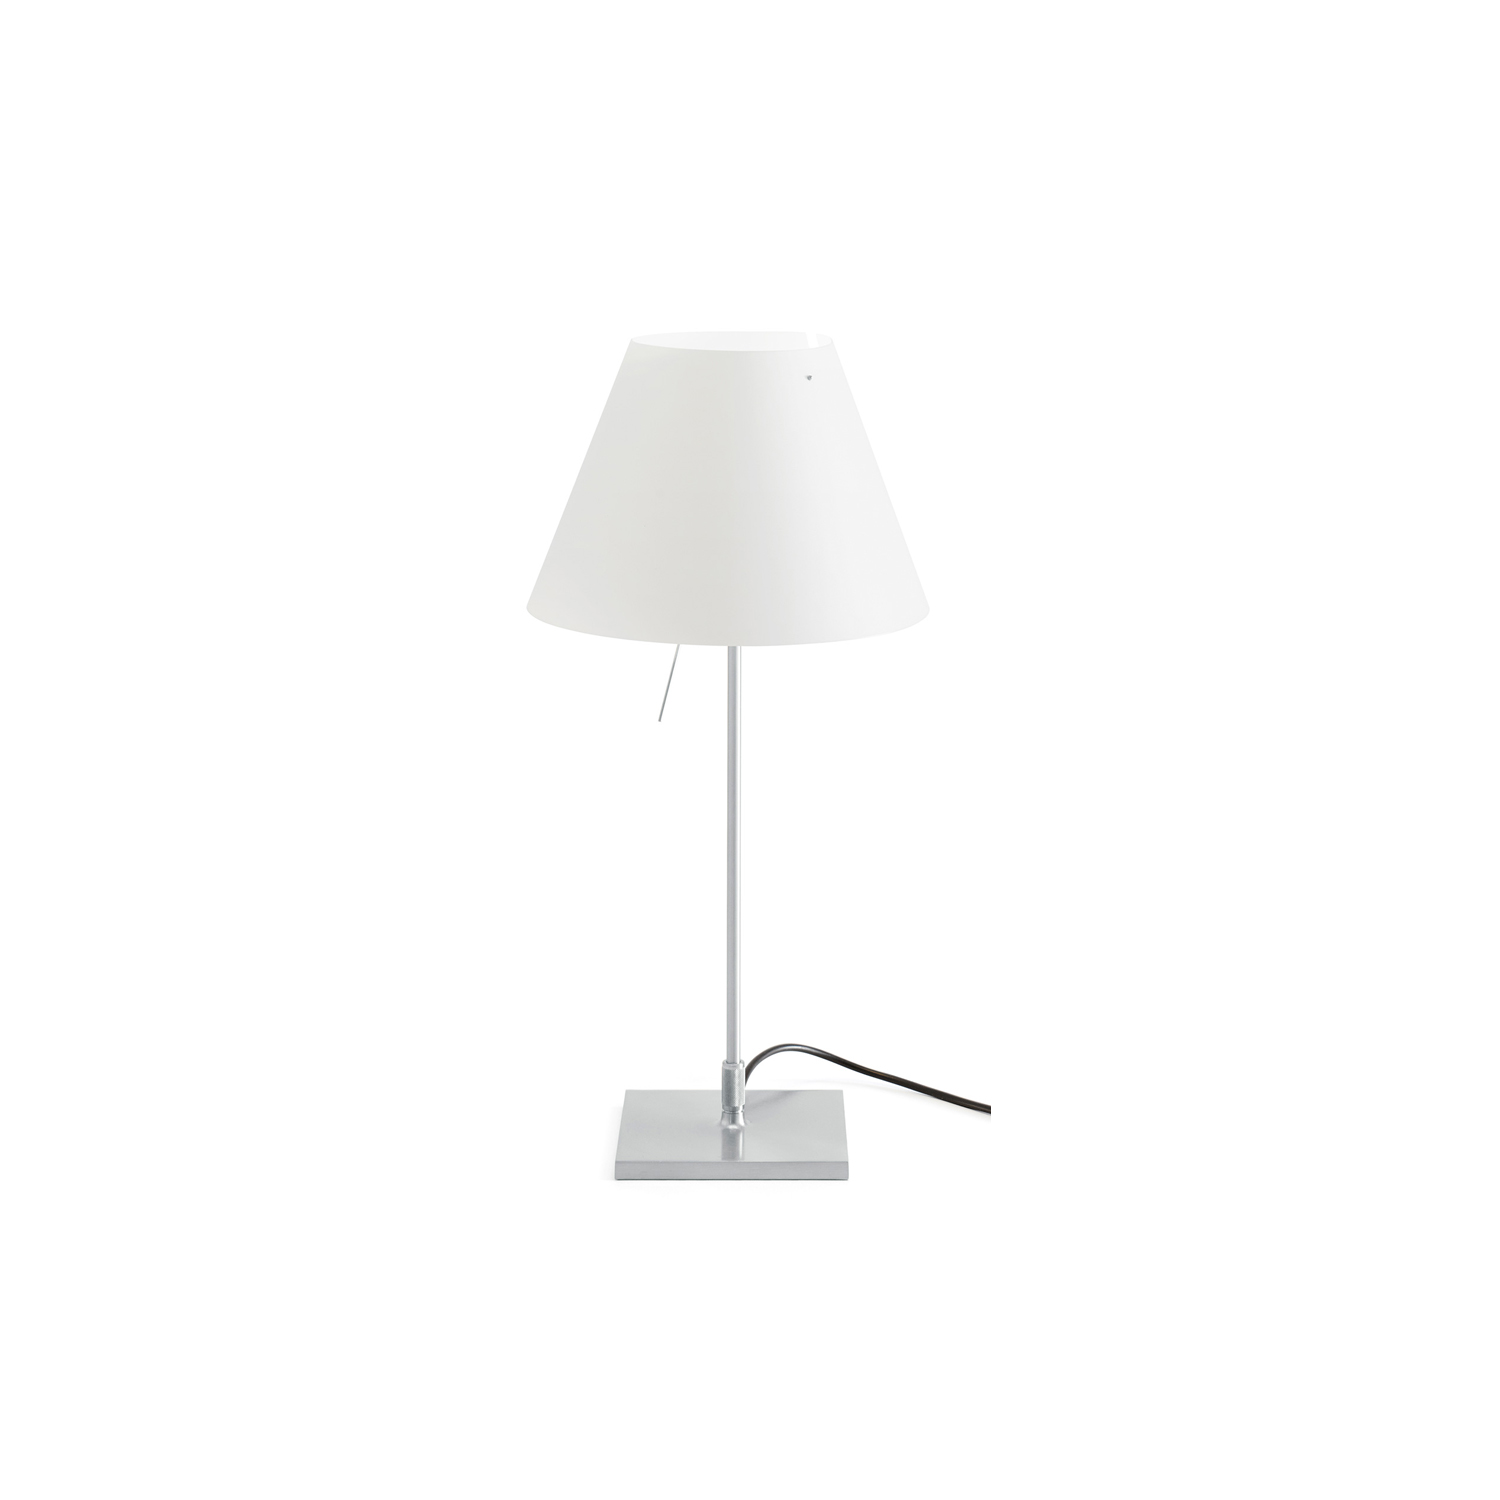 Costanzina Table Lamp -  A discrete but solid presence, Costanzina can be easily positioned in any room, without stylistic limitations. The polycarbonate shade balances on just two points of the aluminium structure. If bumped, the shade can swing but doesn't fall. | Matter of Stuff